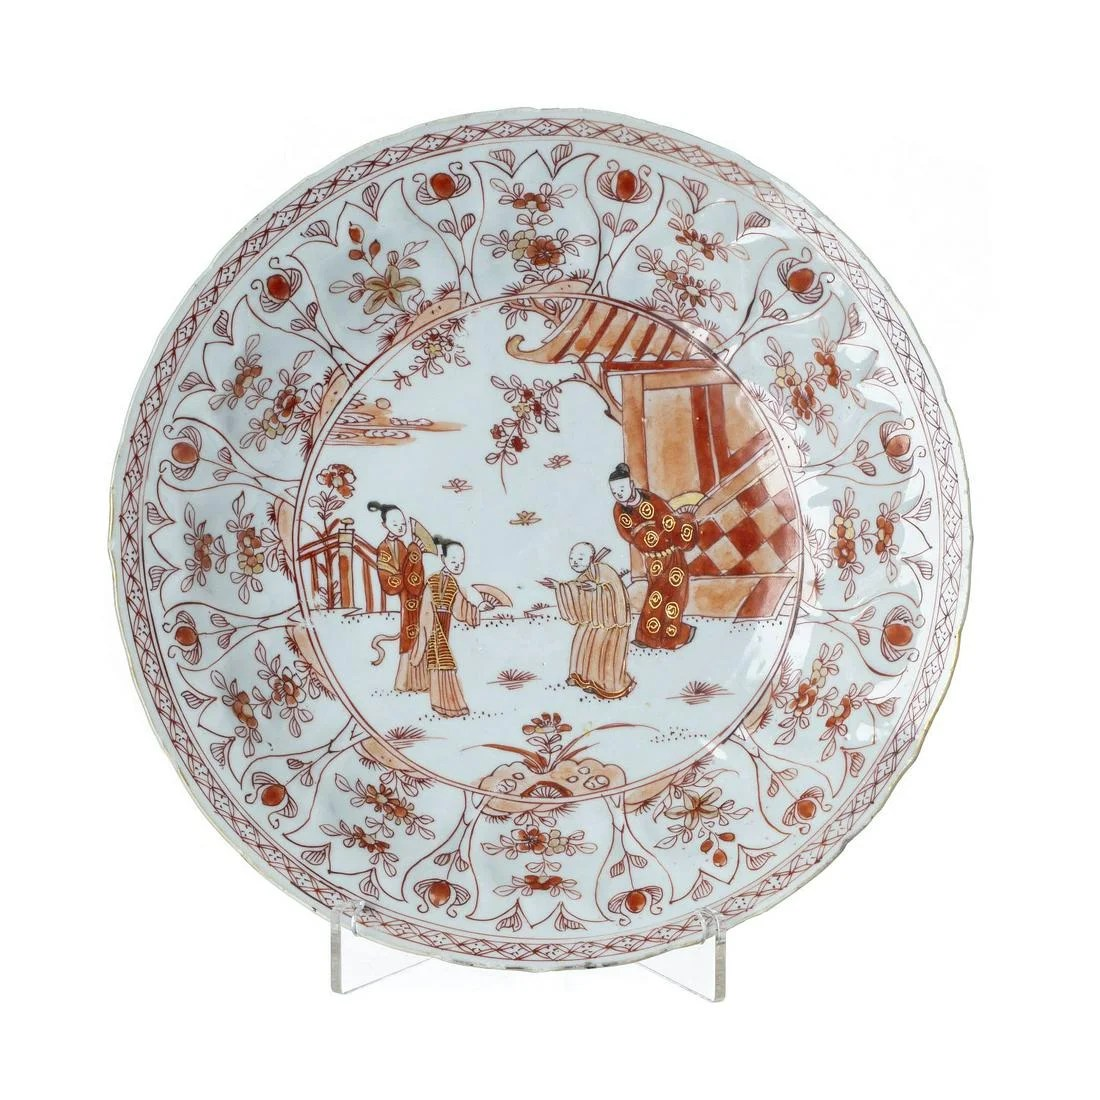 Chinese coral porcelain plate, Kangxi